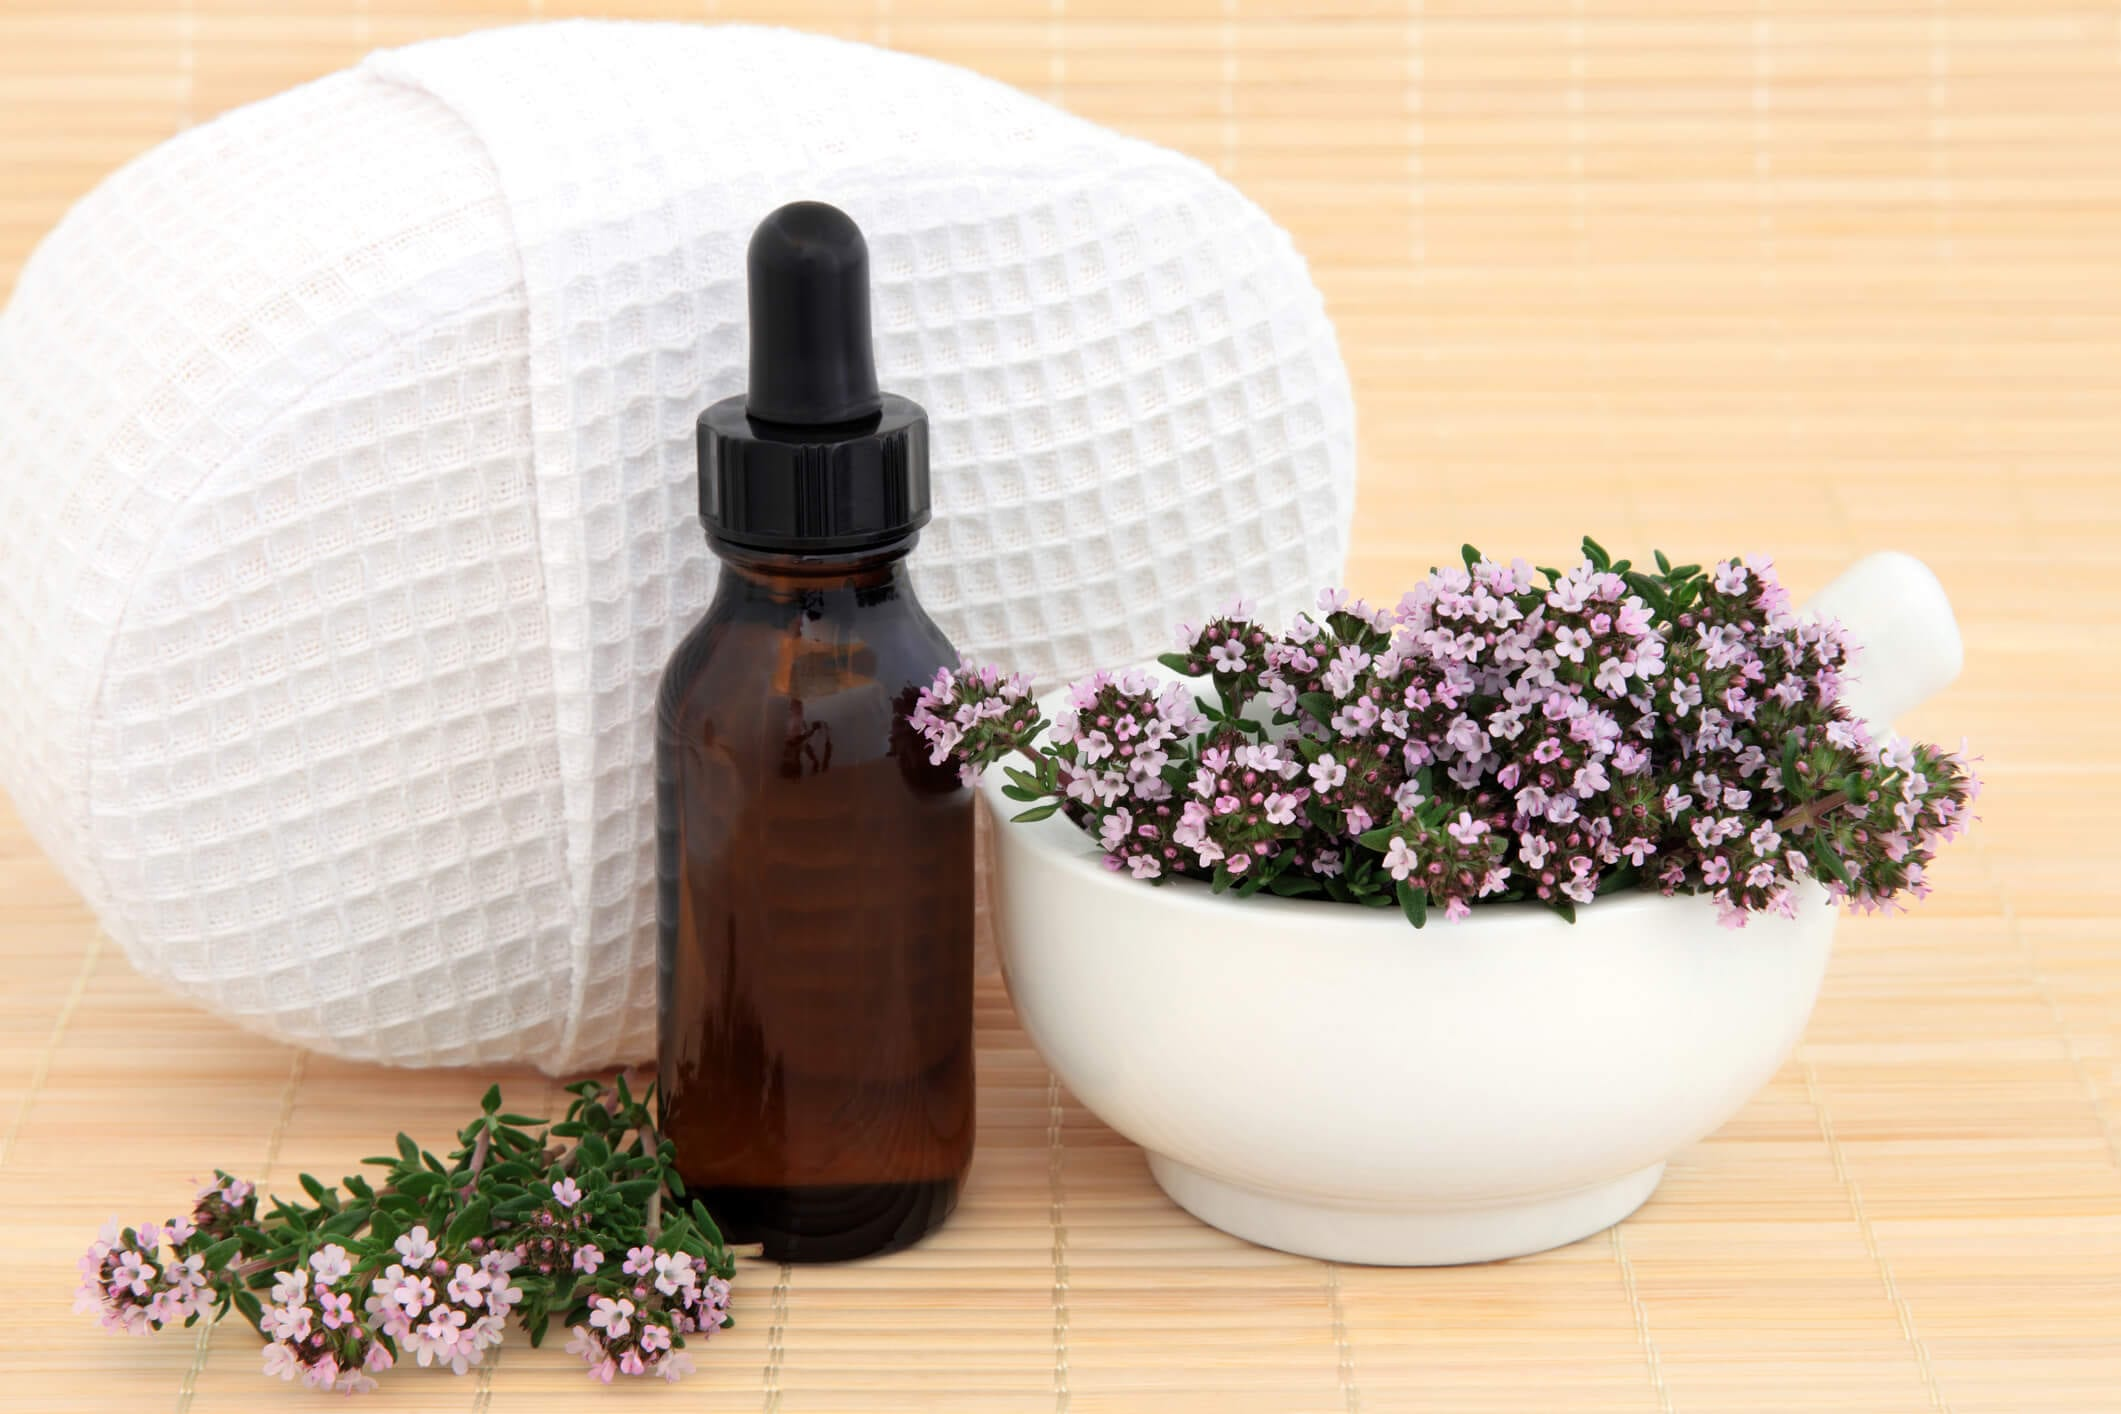 NATUROPATHIC ADVICE FOR WINTER COUGHS & COLDS